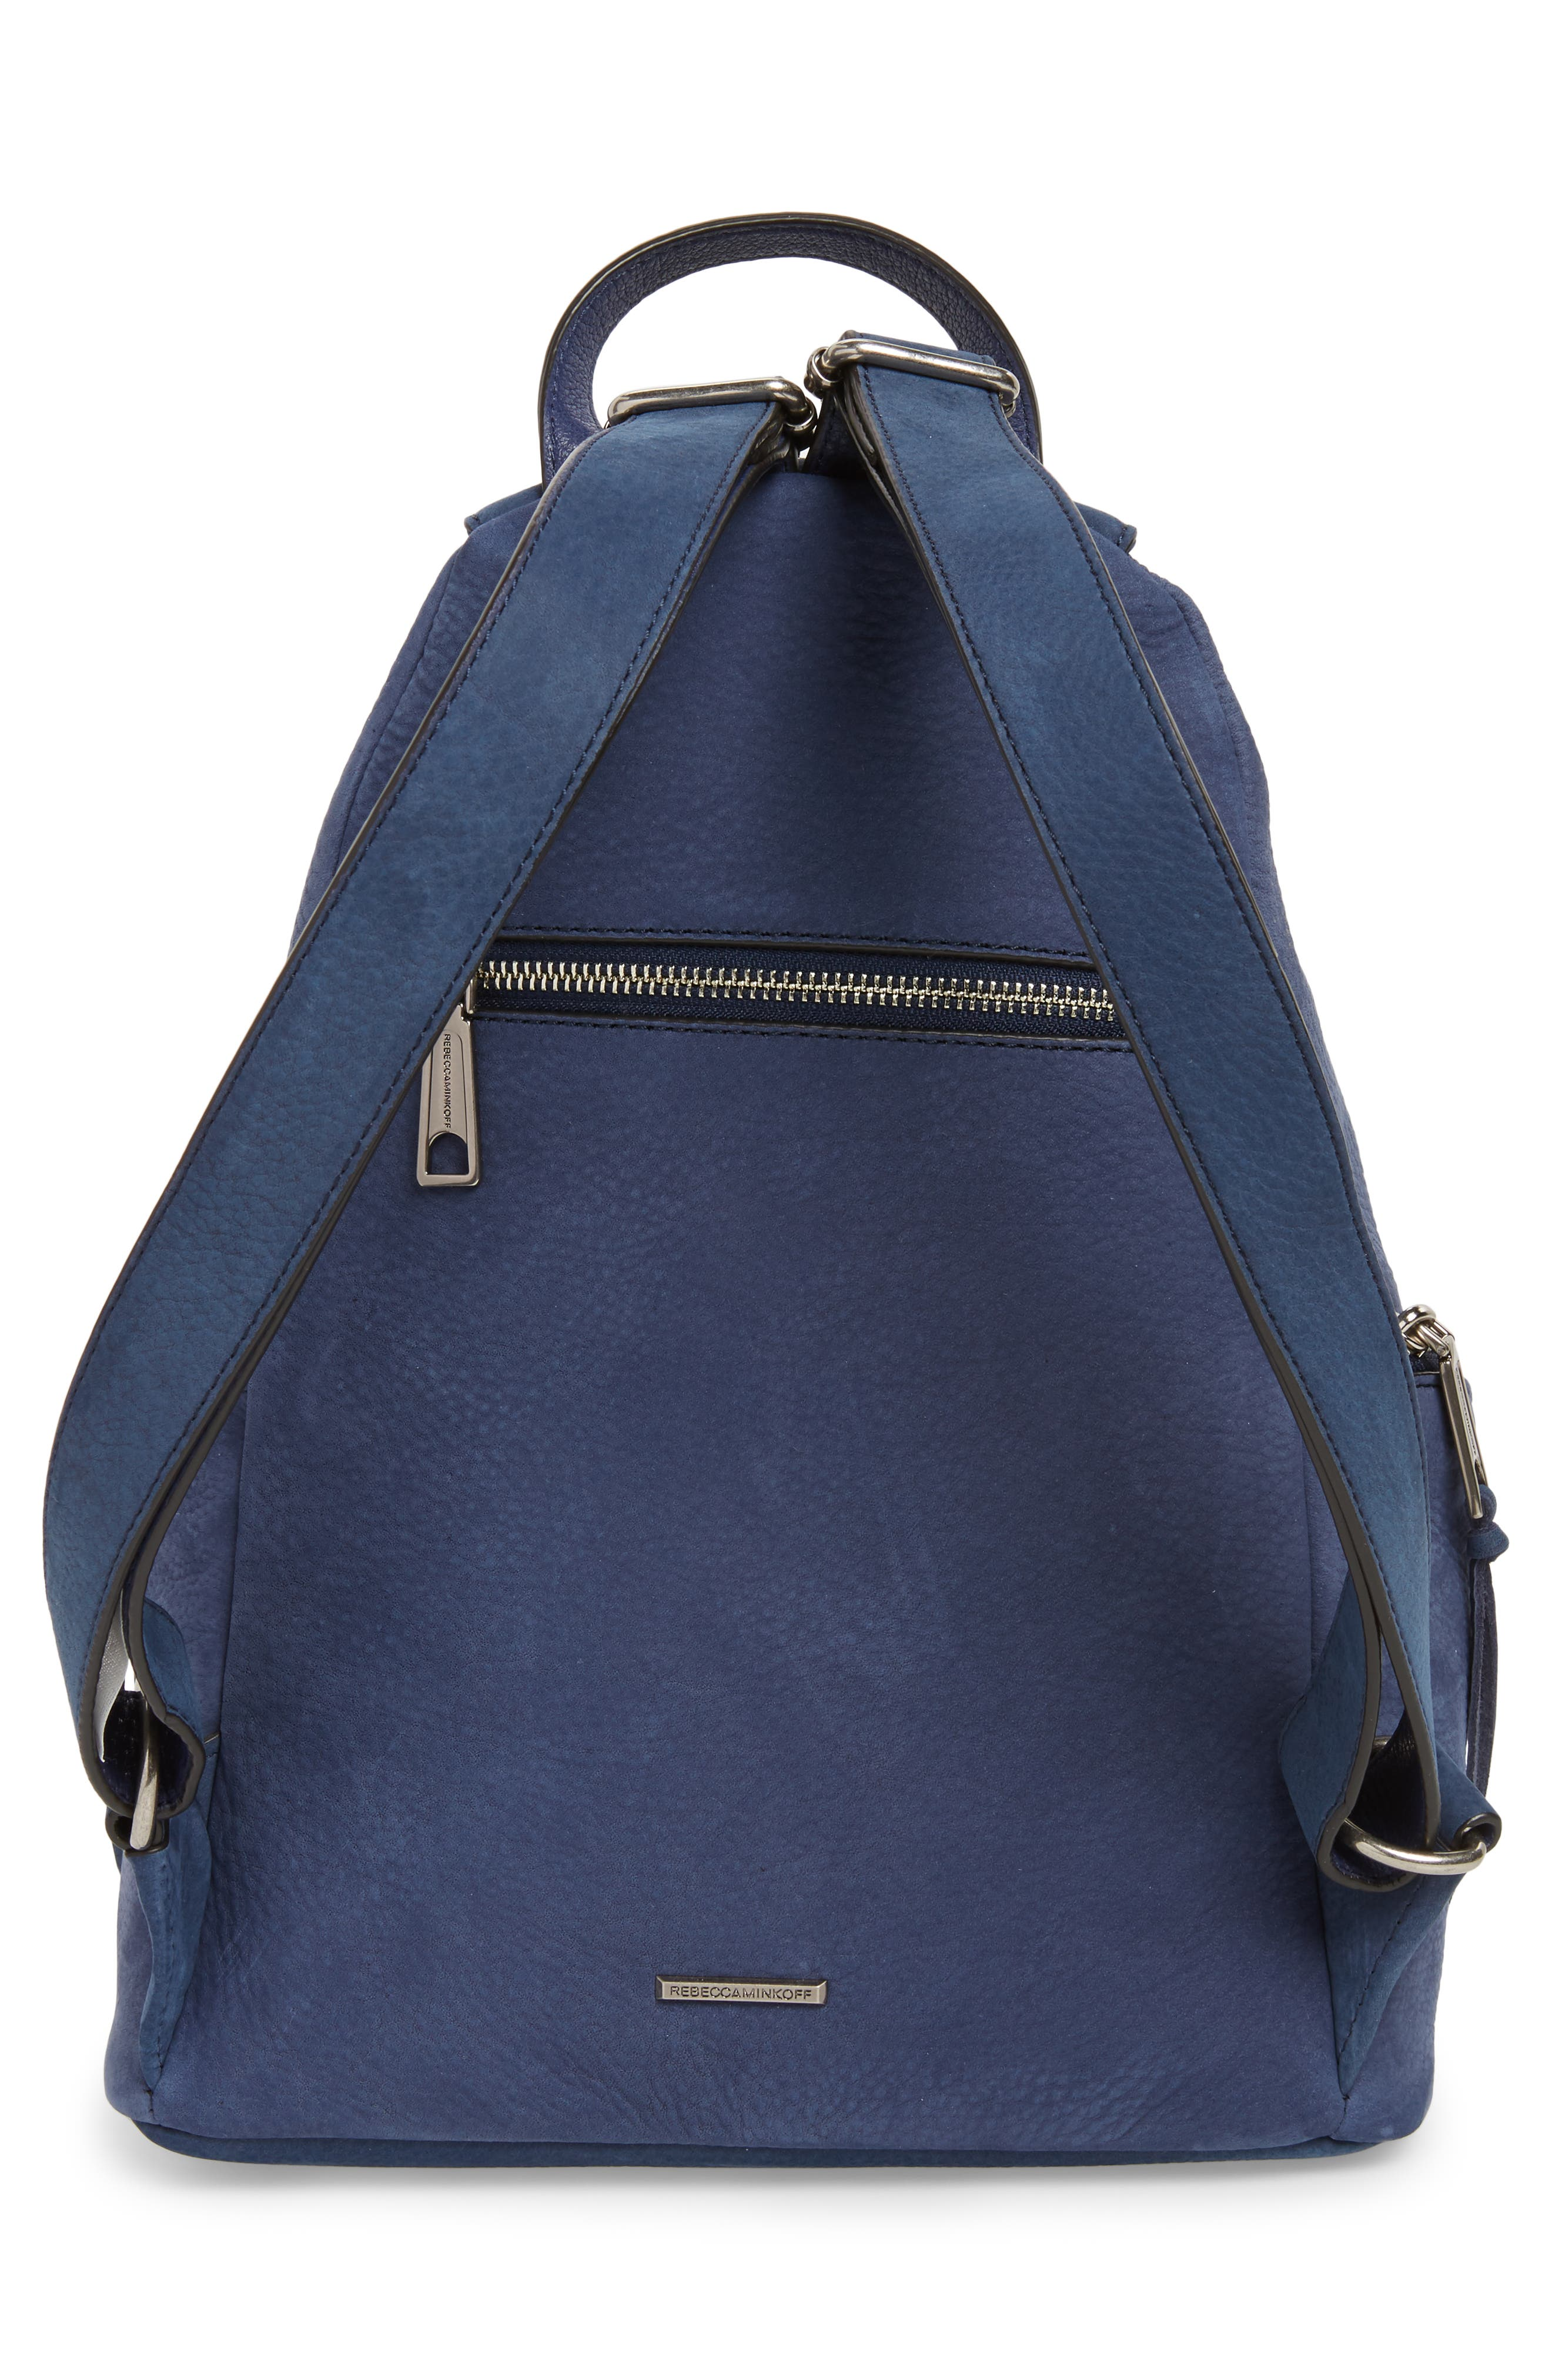 Julian Convertible Nubuck Leather Backpack,                             Alternate thumbnail 3, color,                             483